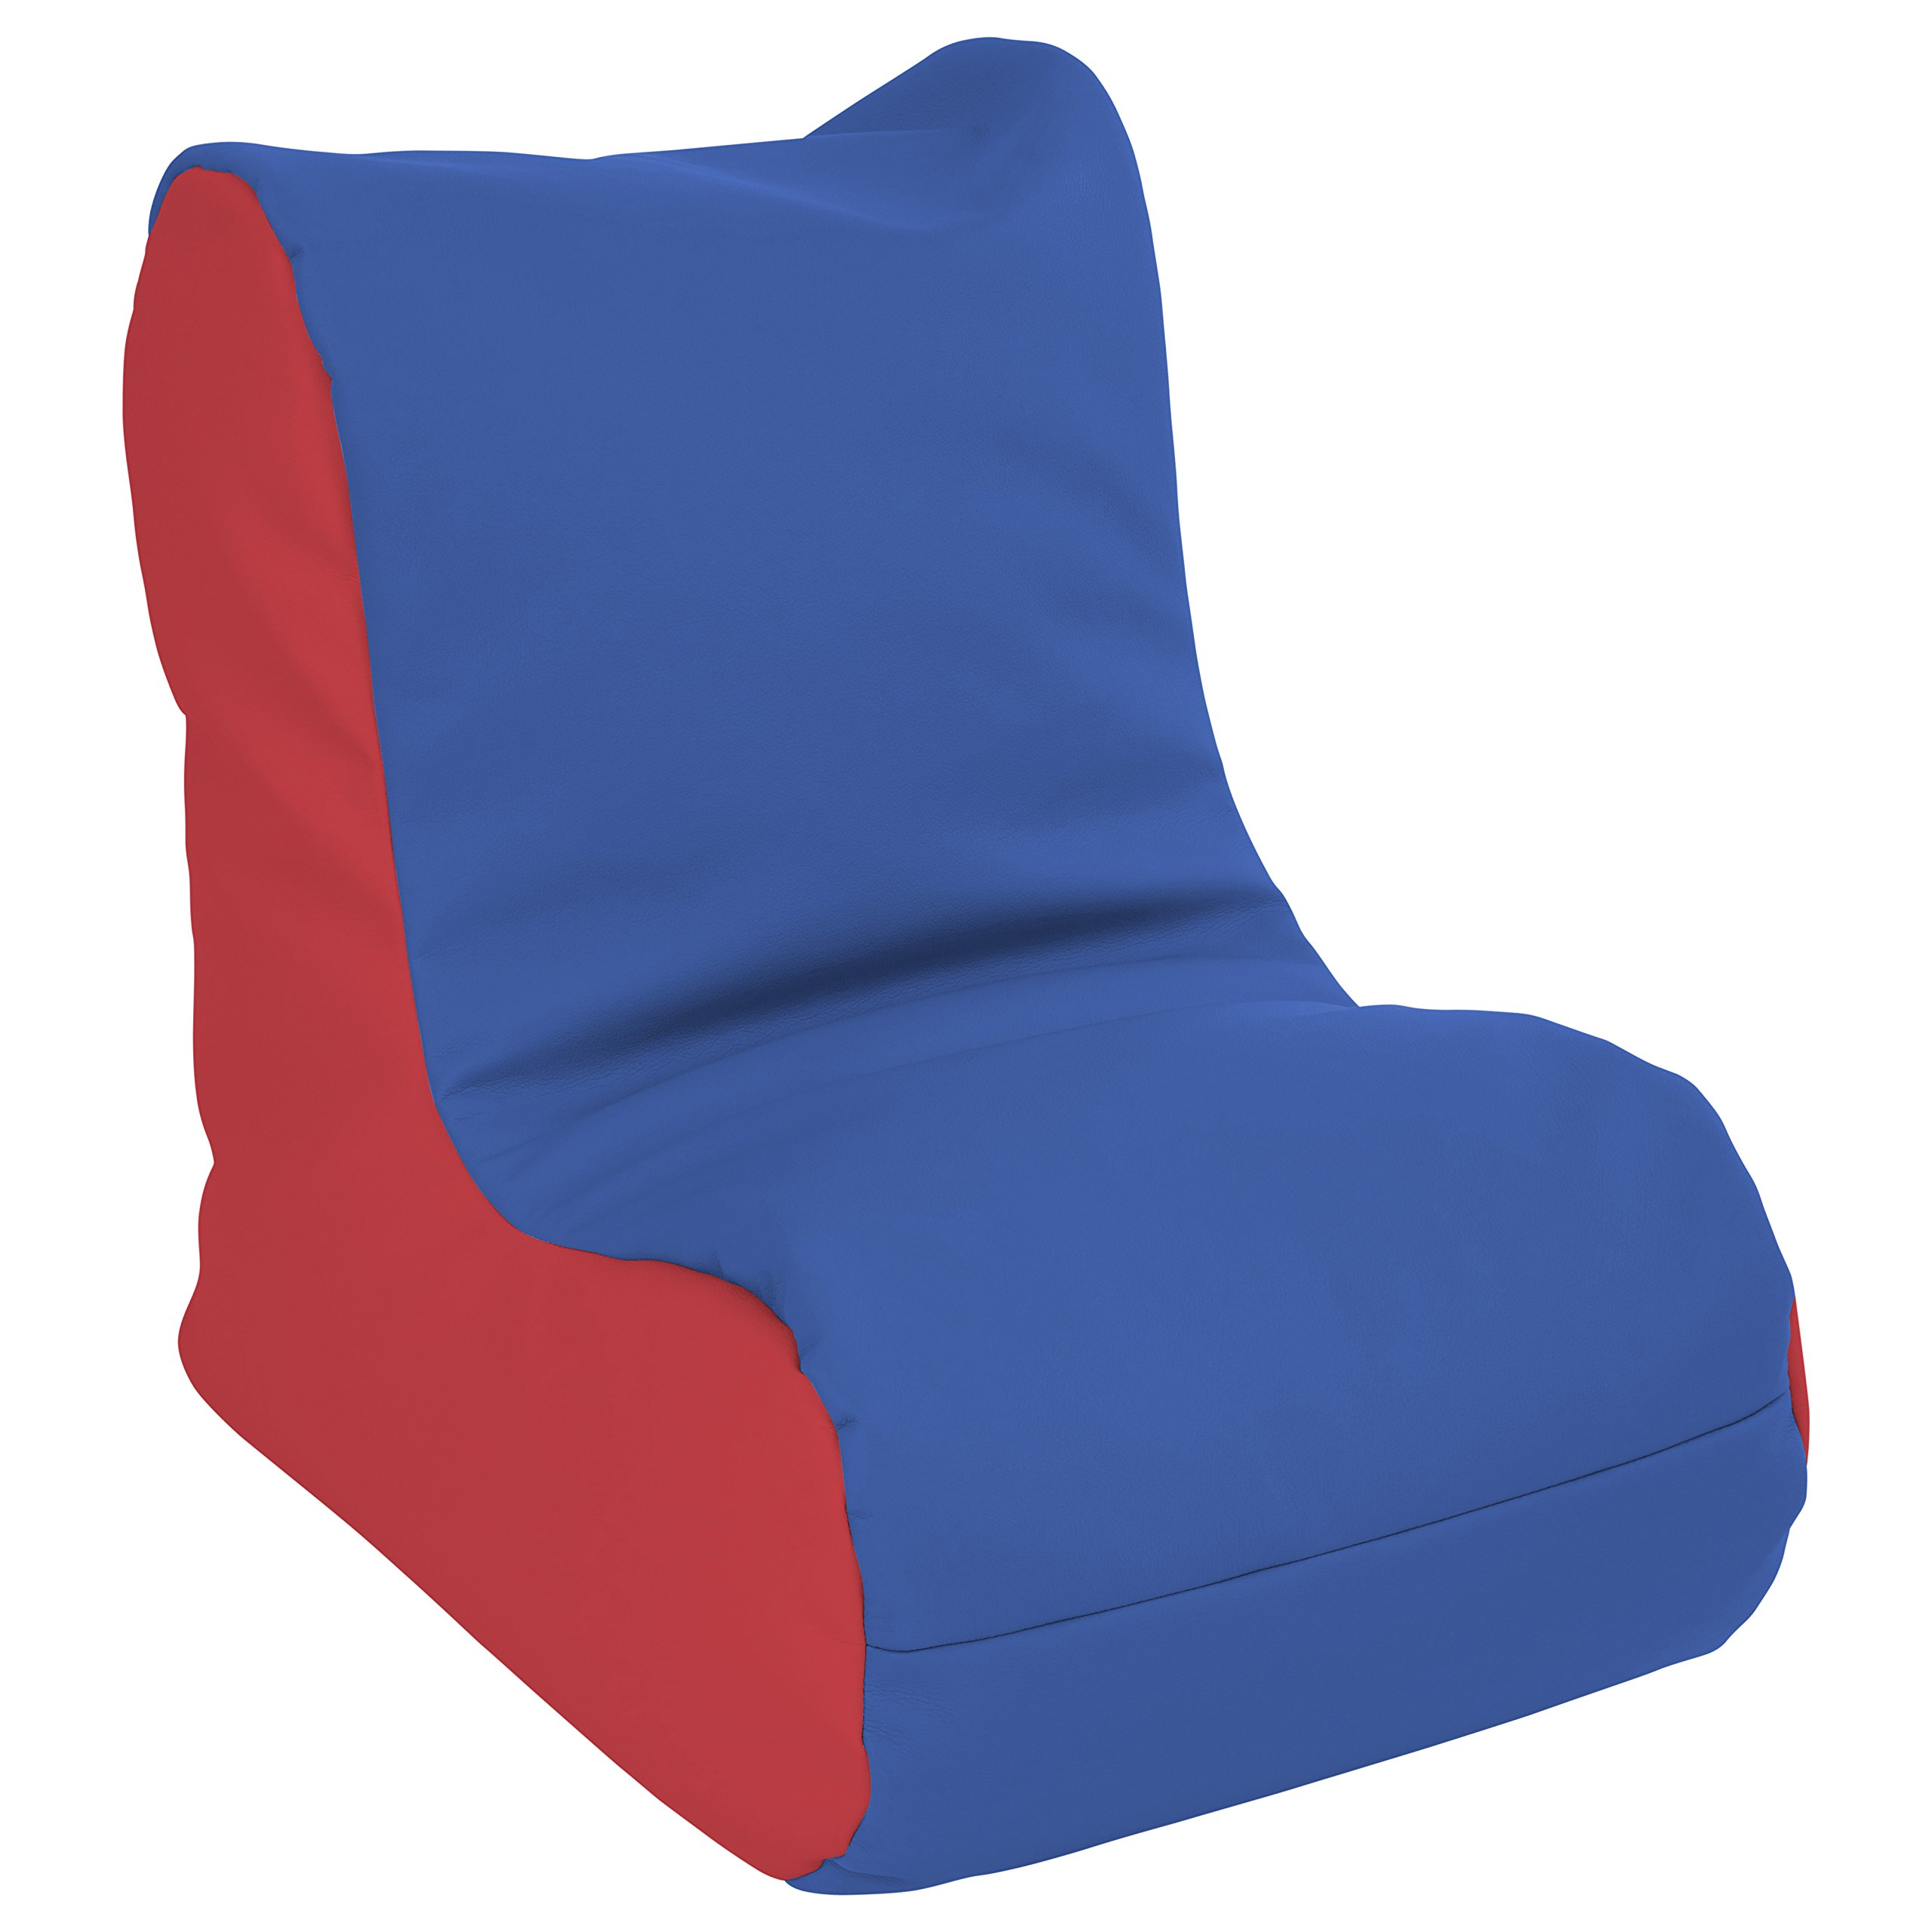 ECR4Kids SoftZone Toddler Bean Bag Soft Seat, Blue and Red